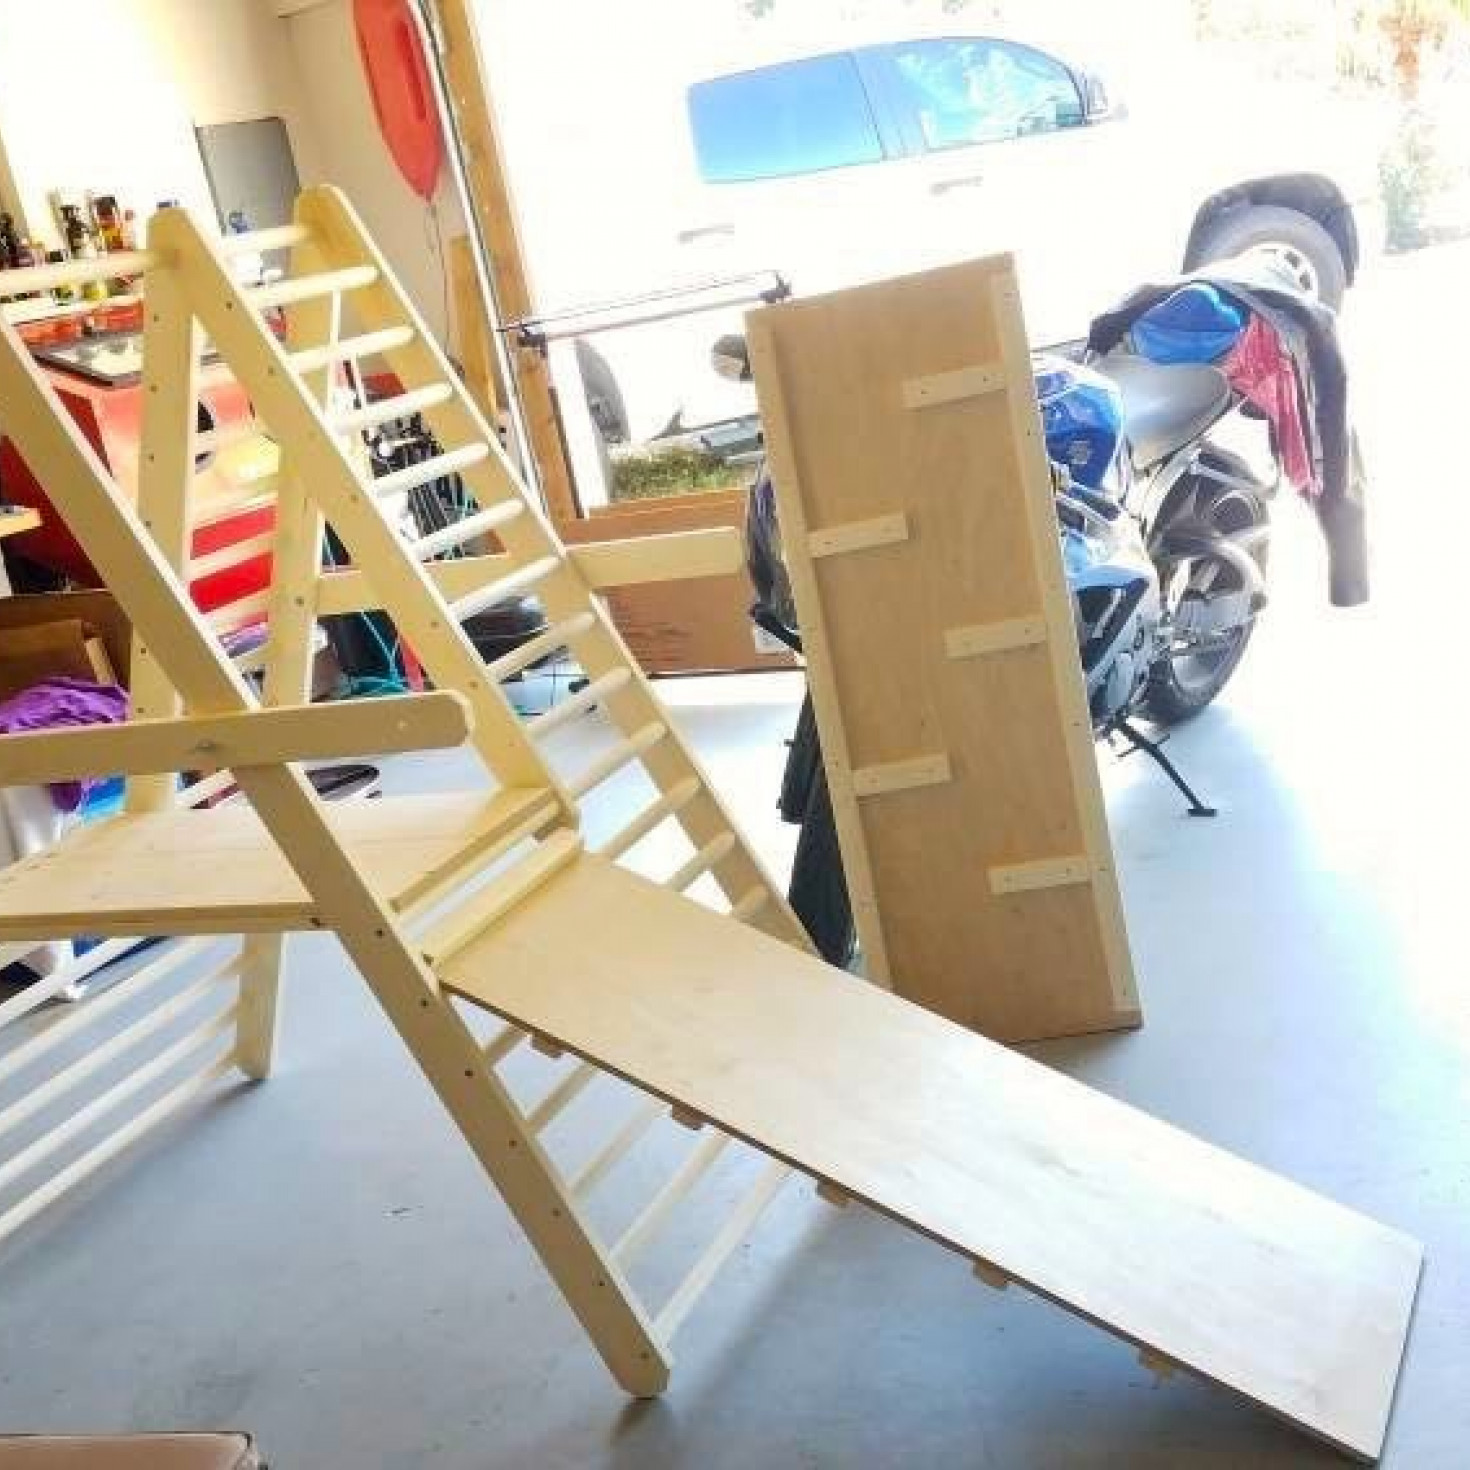 The accessories of a climbing ladder for toddlers